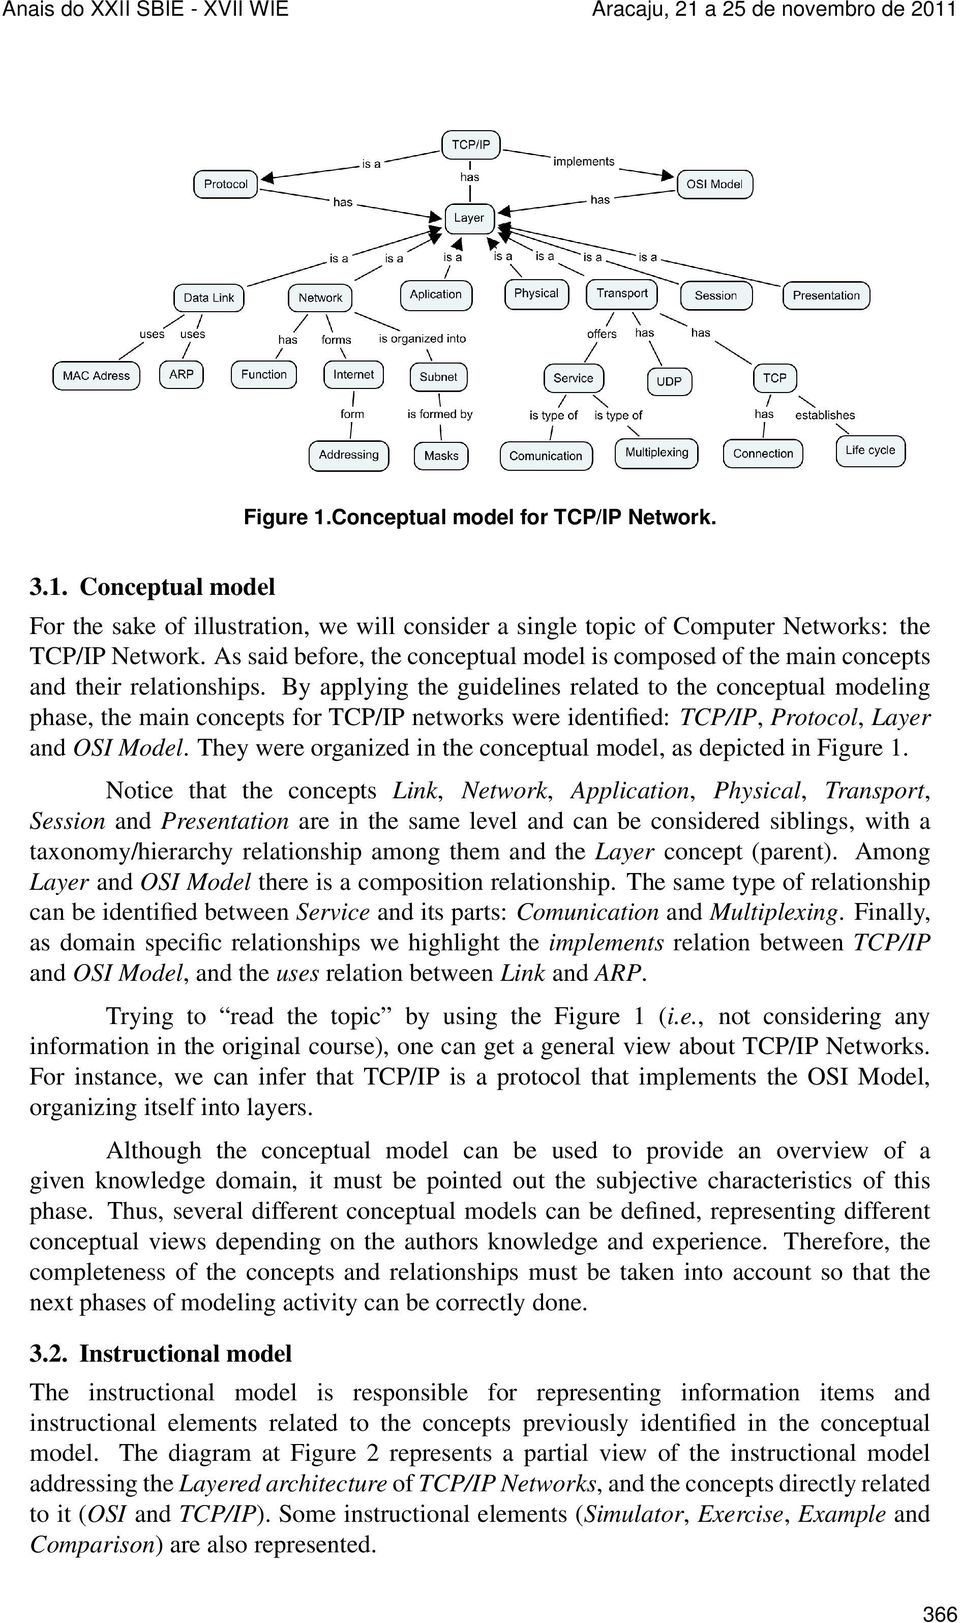 By applying the guidelines related to the conceptual modeling phase, the main concepts for TCP/IP networks were identified: TCP/IP, Protocol, Layer and OSI Model.